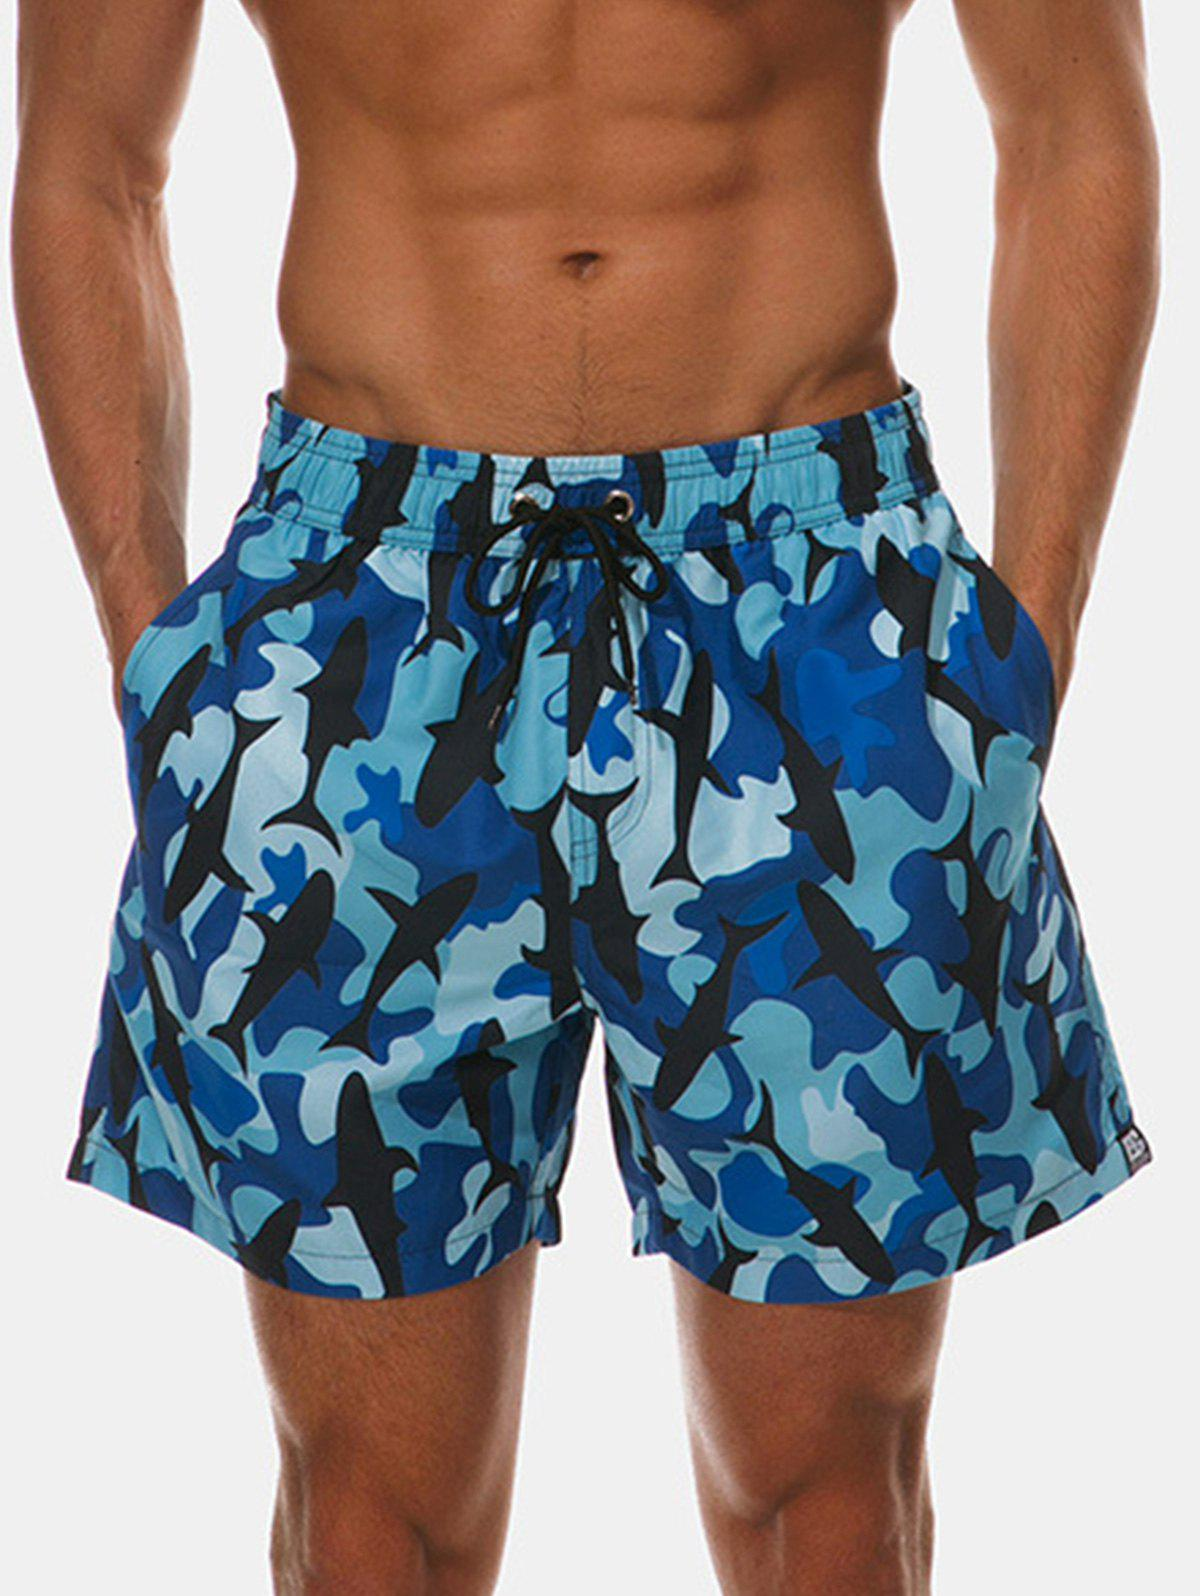 Drawstring Camo Whale Print Beach Shorts - multicolor 2XL